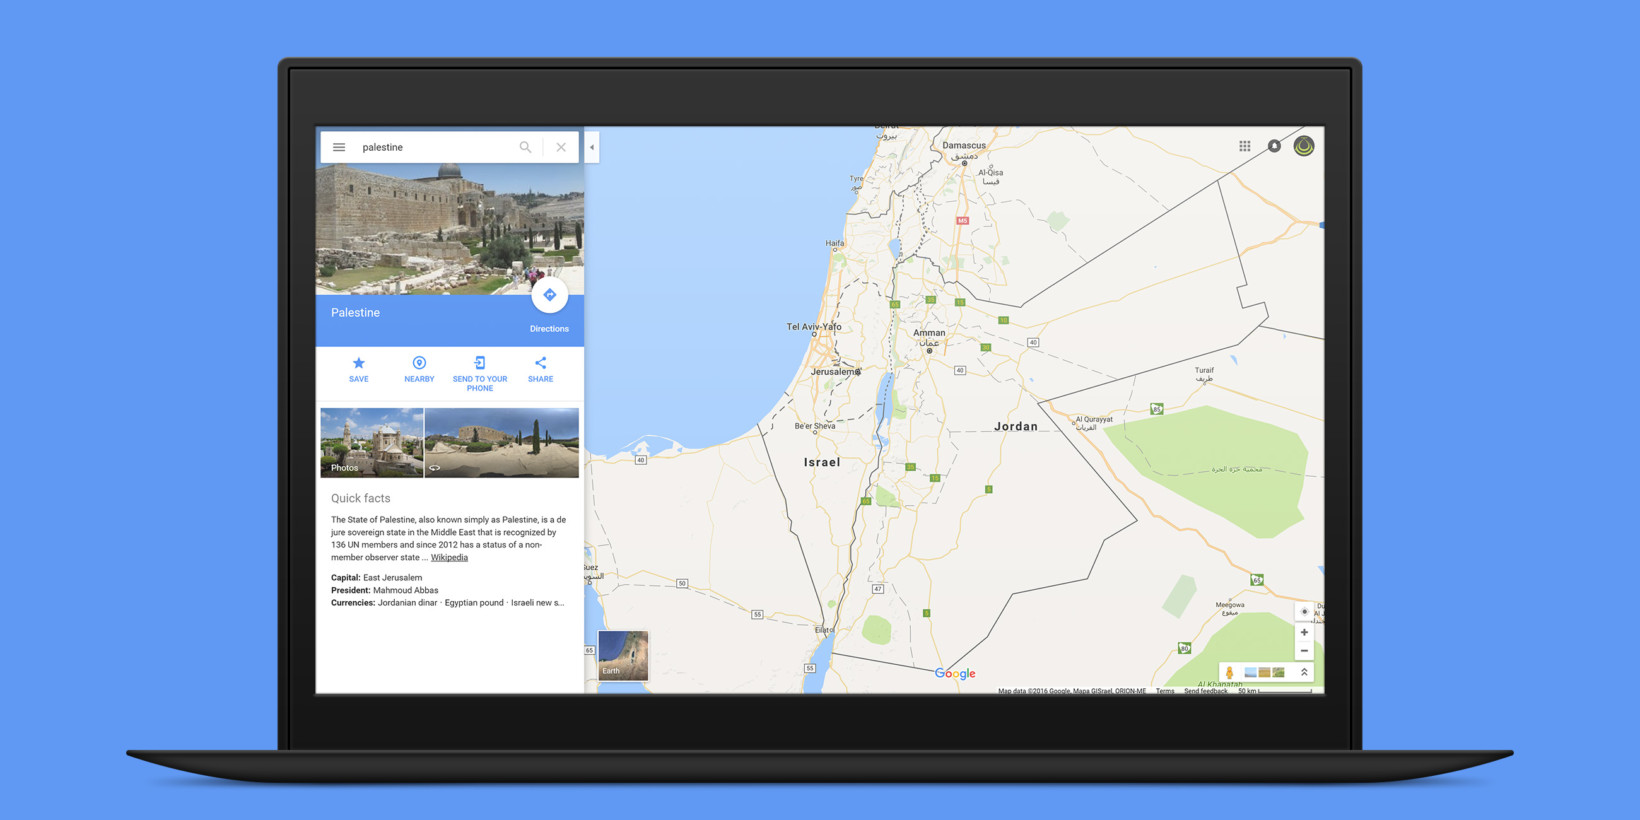 Google says it didn't remove 'Palestine' from its maps